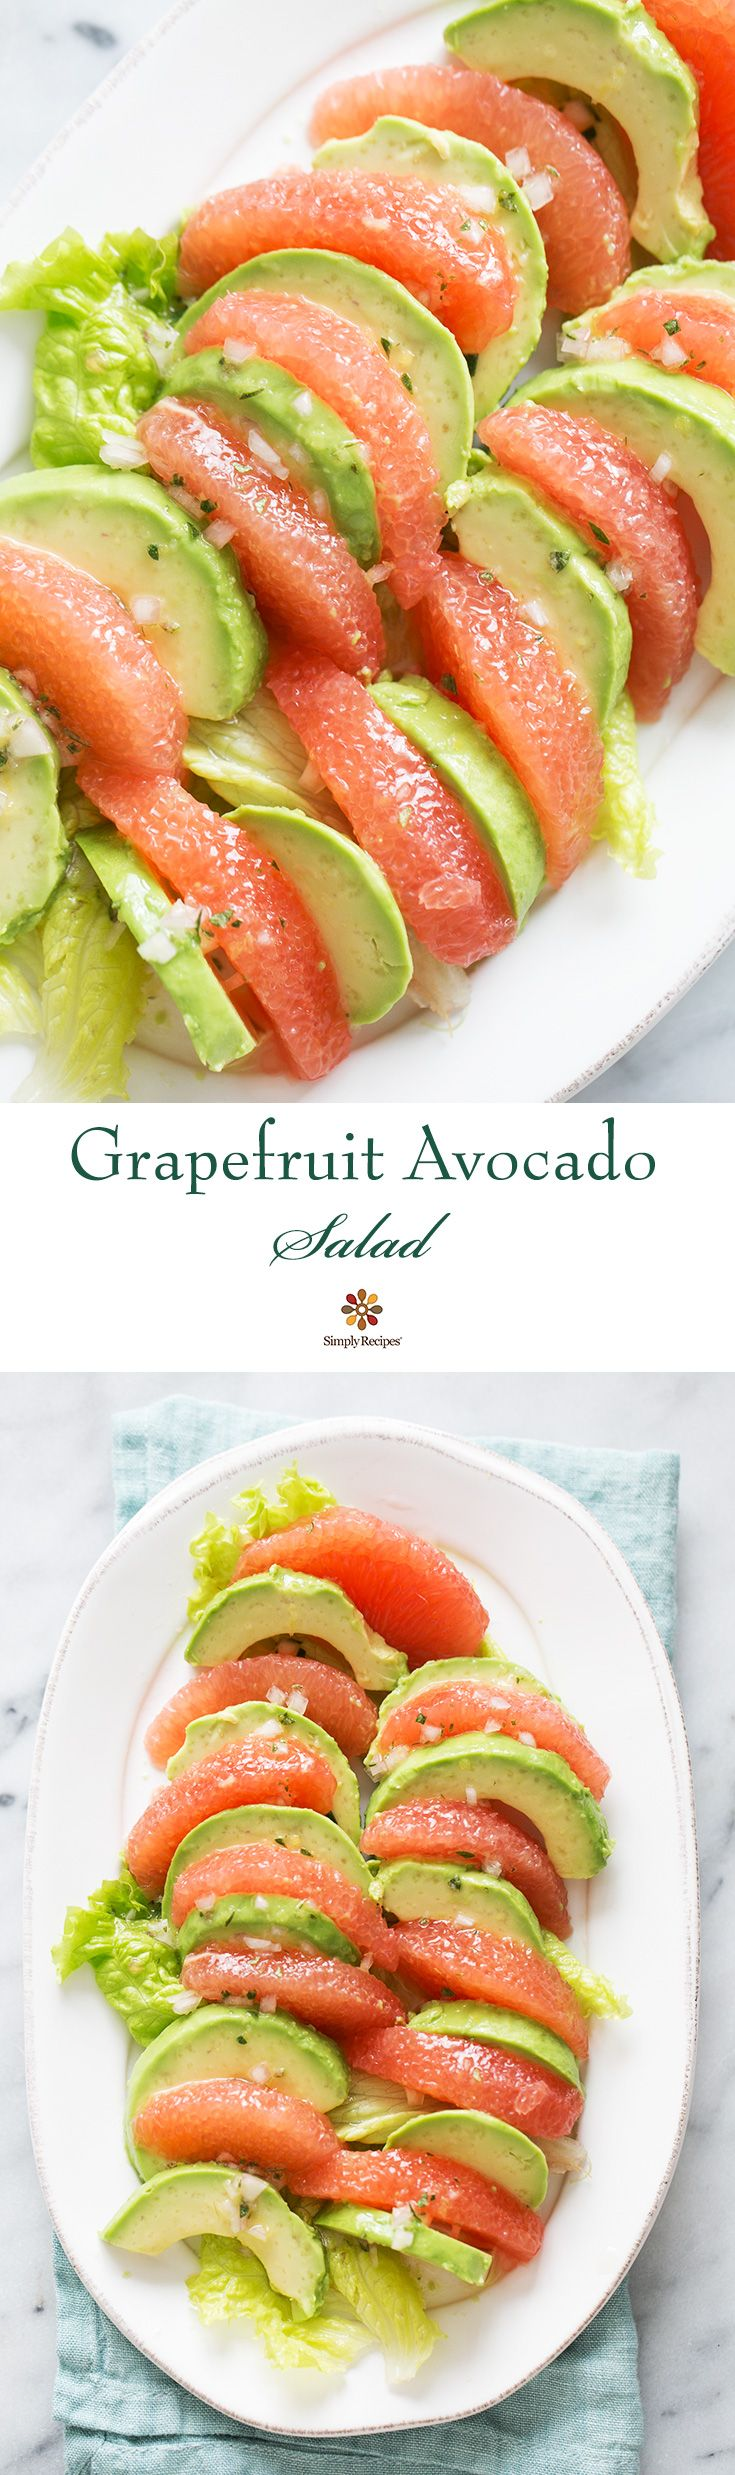 Grapefruit Avocado Salad ~ Grapefruit avocado salad. Peeled segments of grapefruit arranged with avocado slices, with a citrus vinaigrette. ~ SimplyRecipes.com